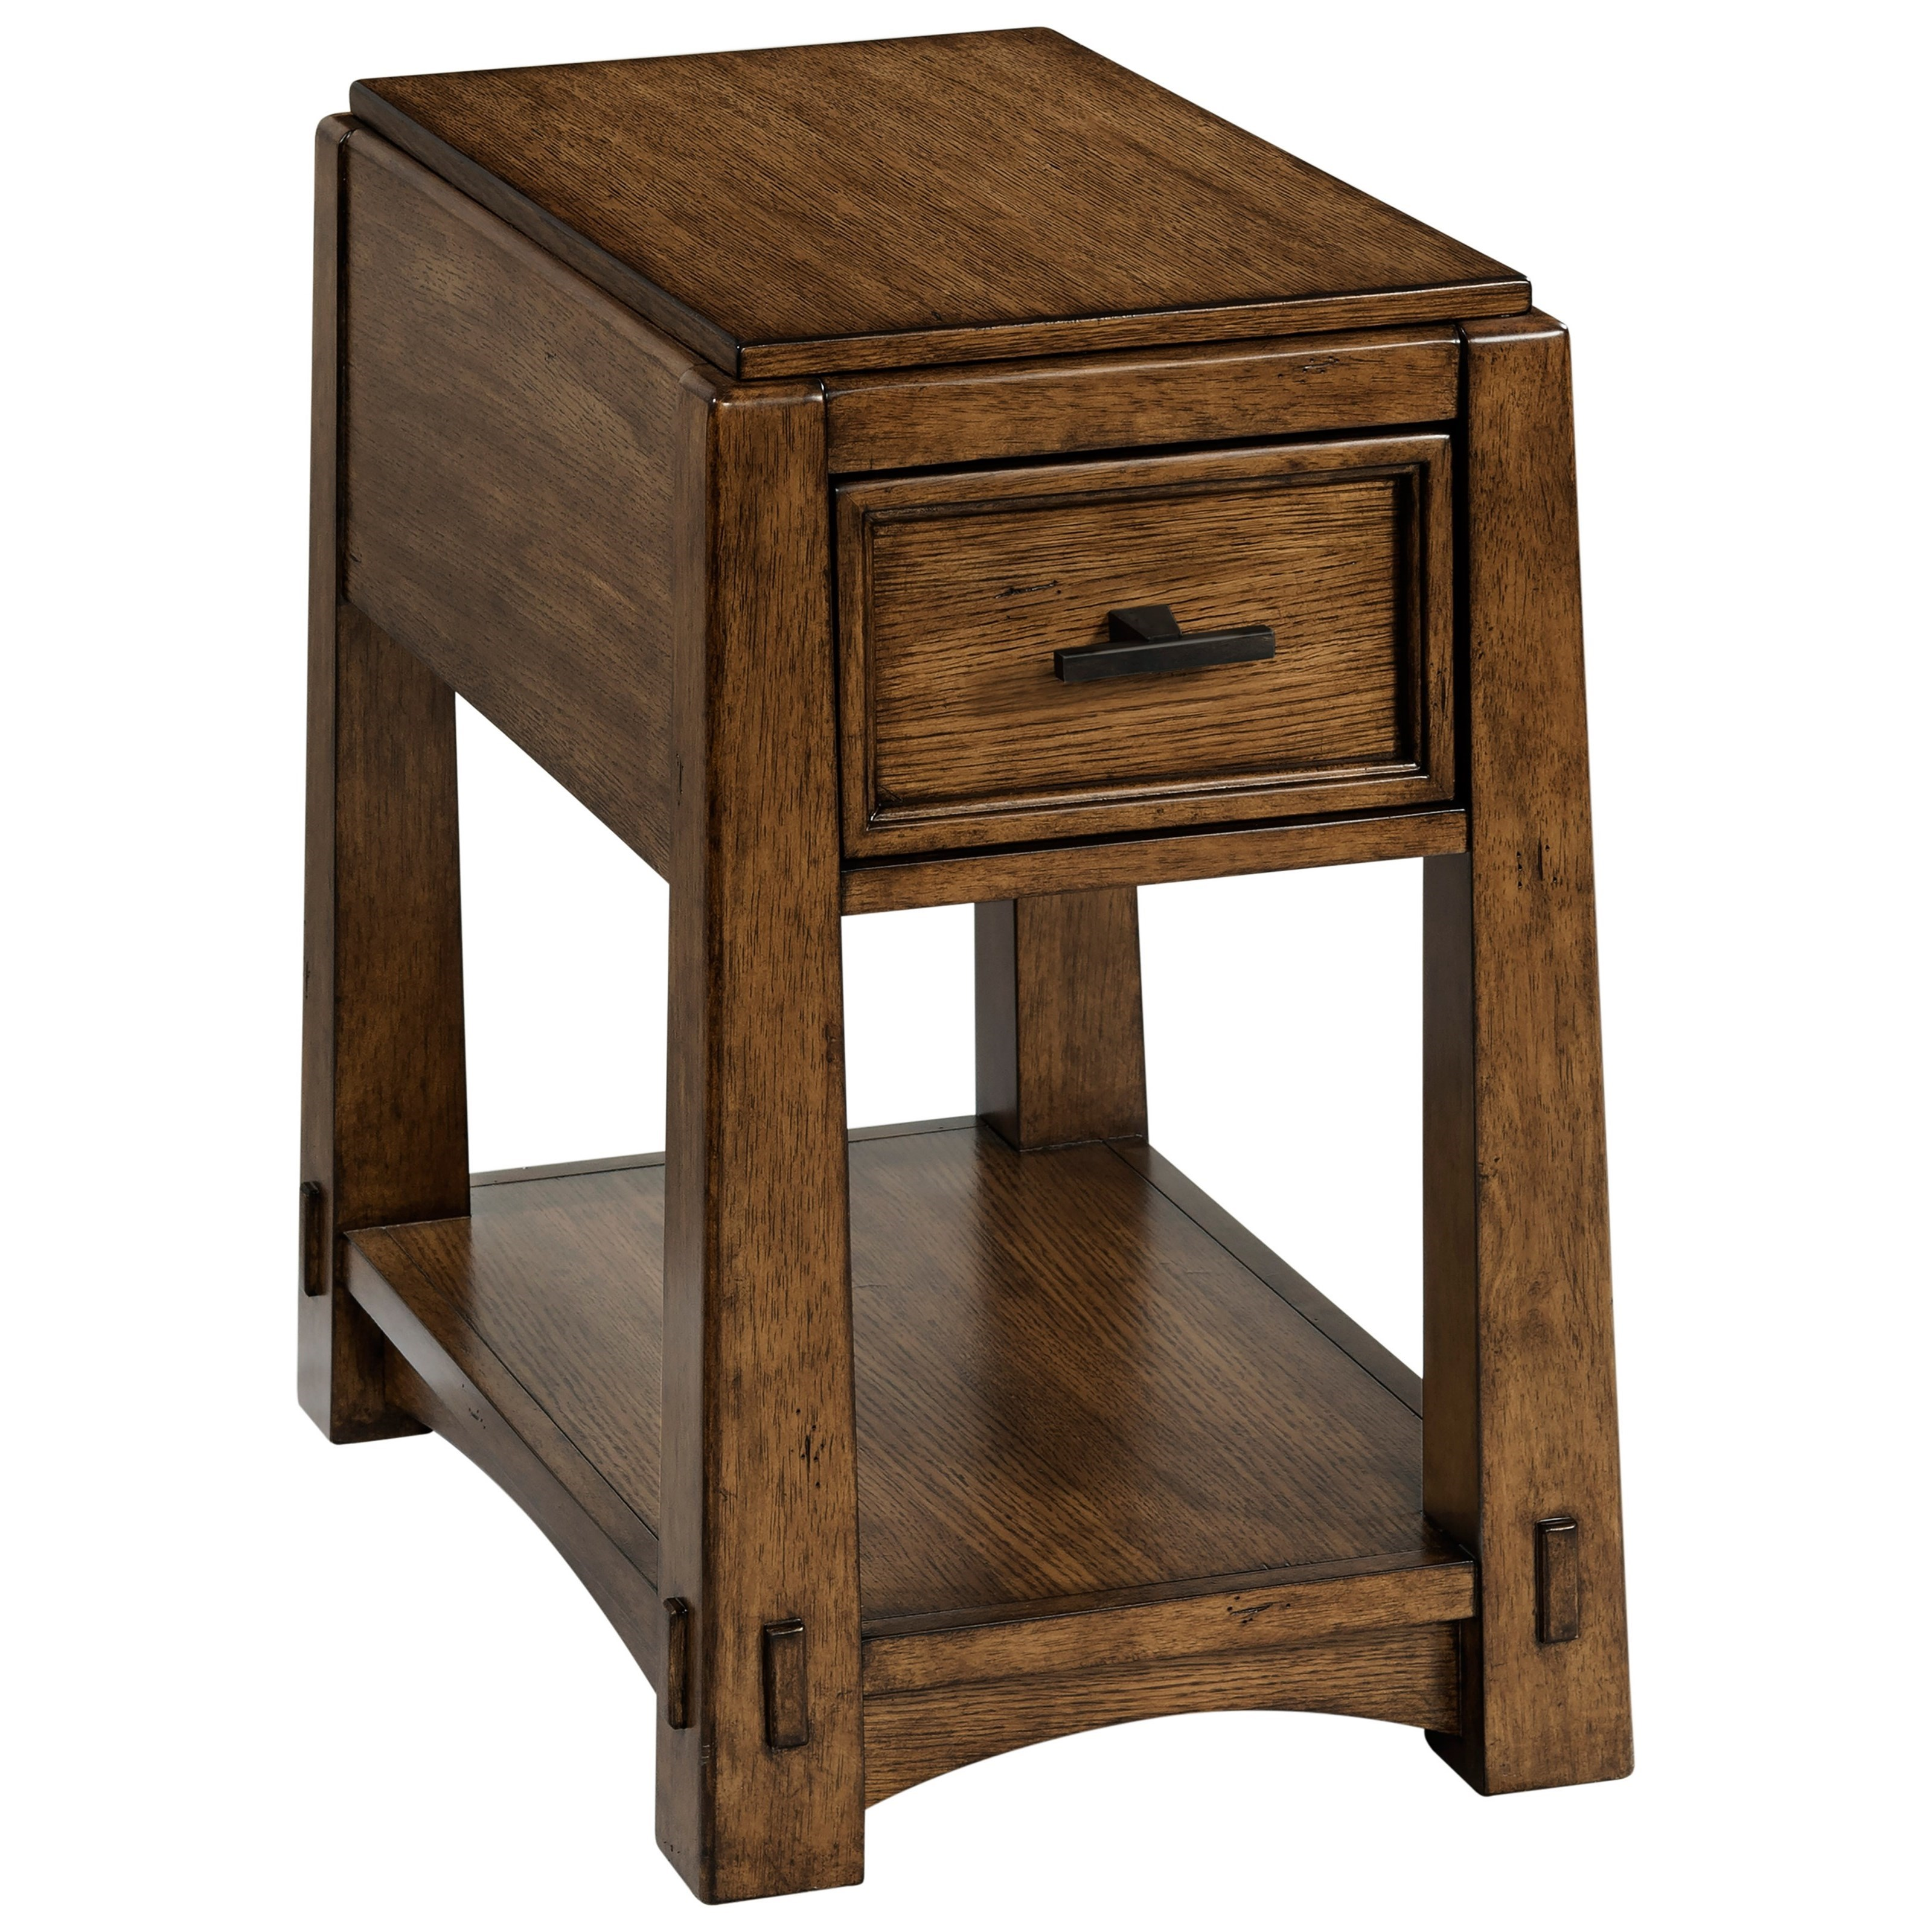 Broyhill Furniture Winslow Park 1 Drawer Chairside Table